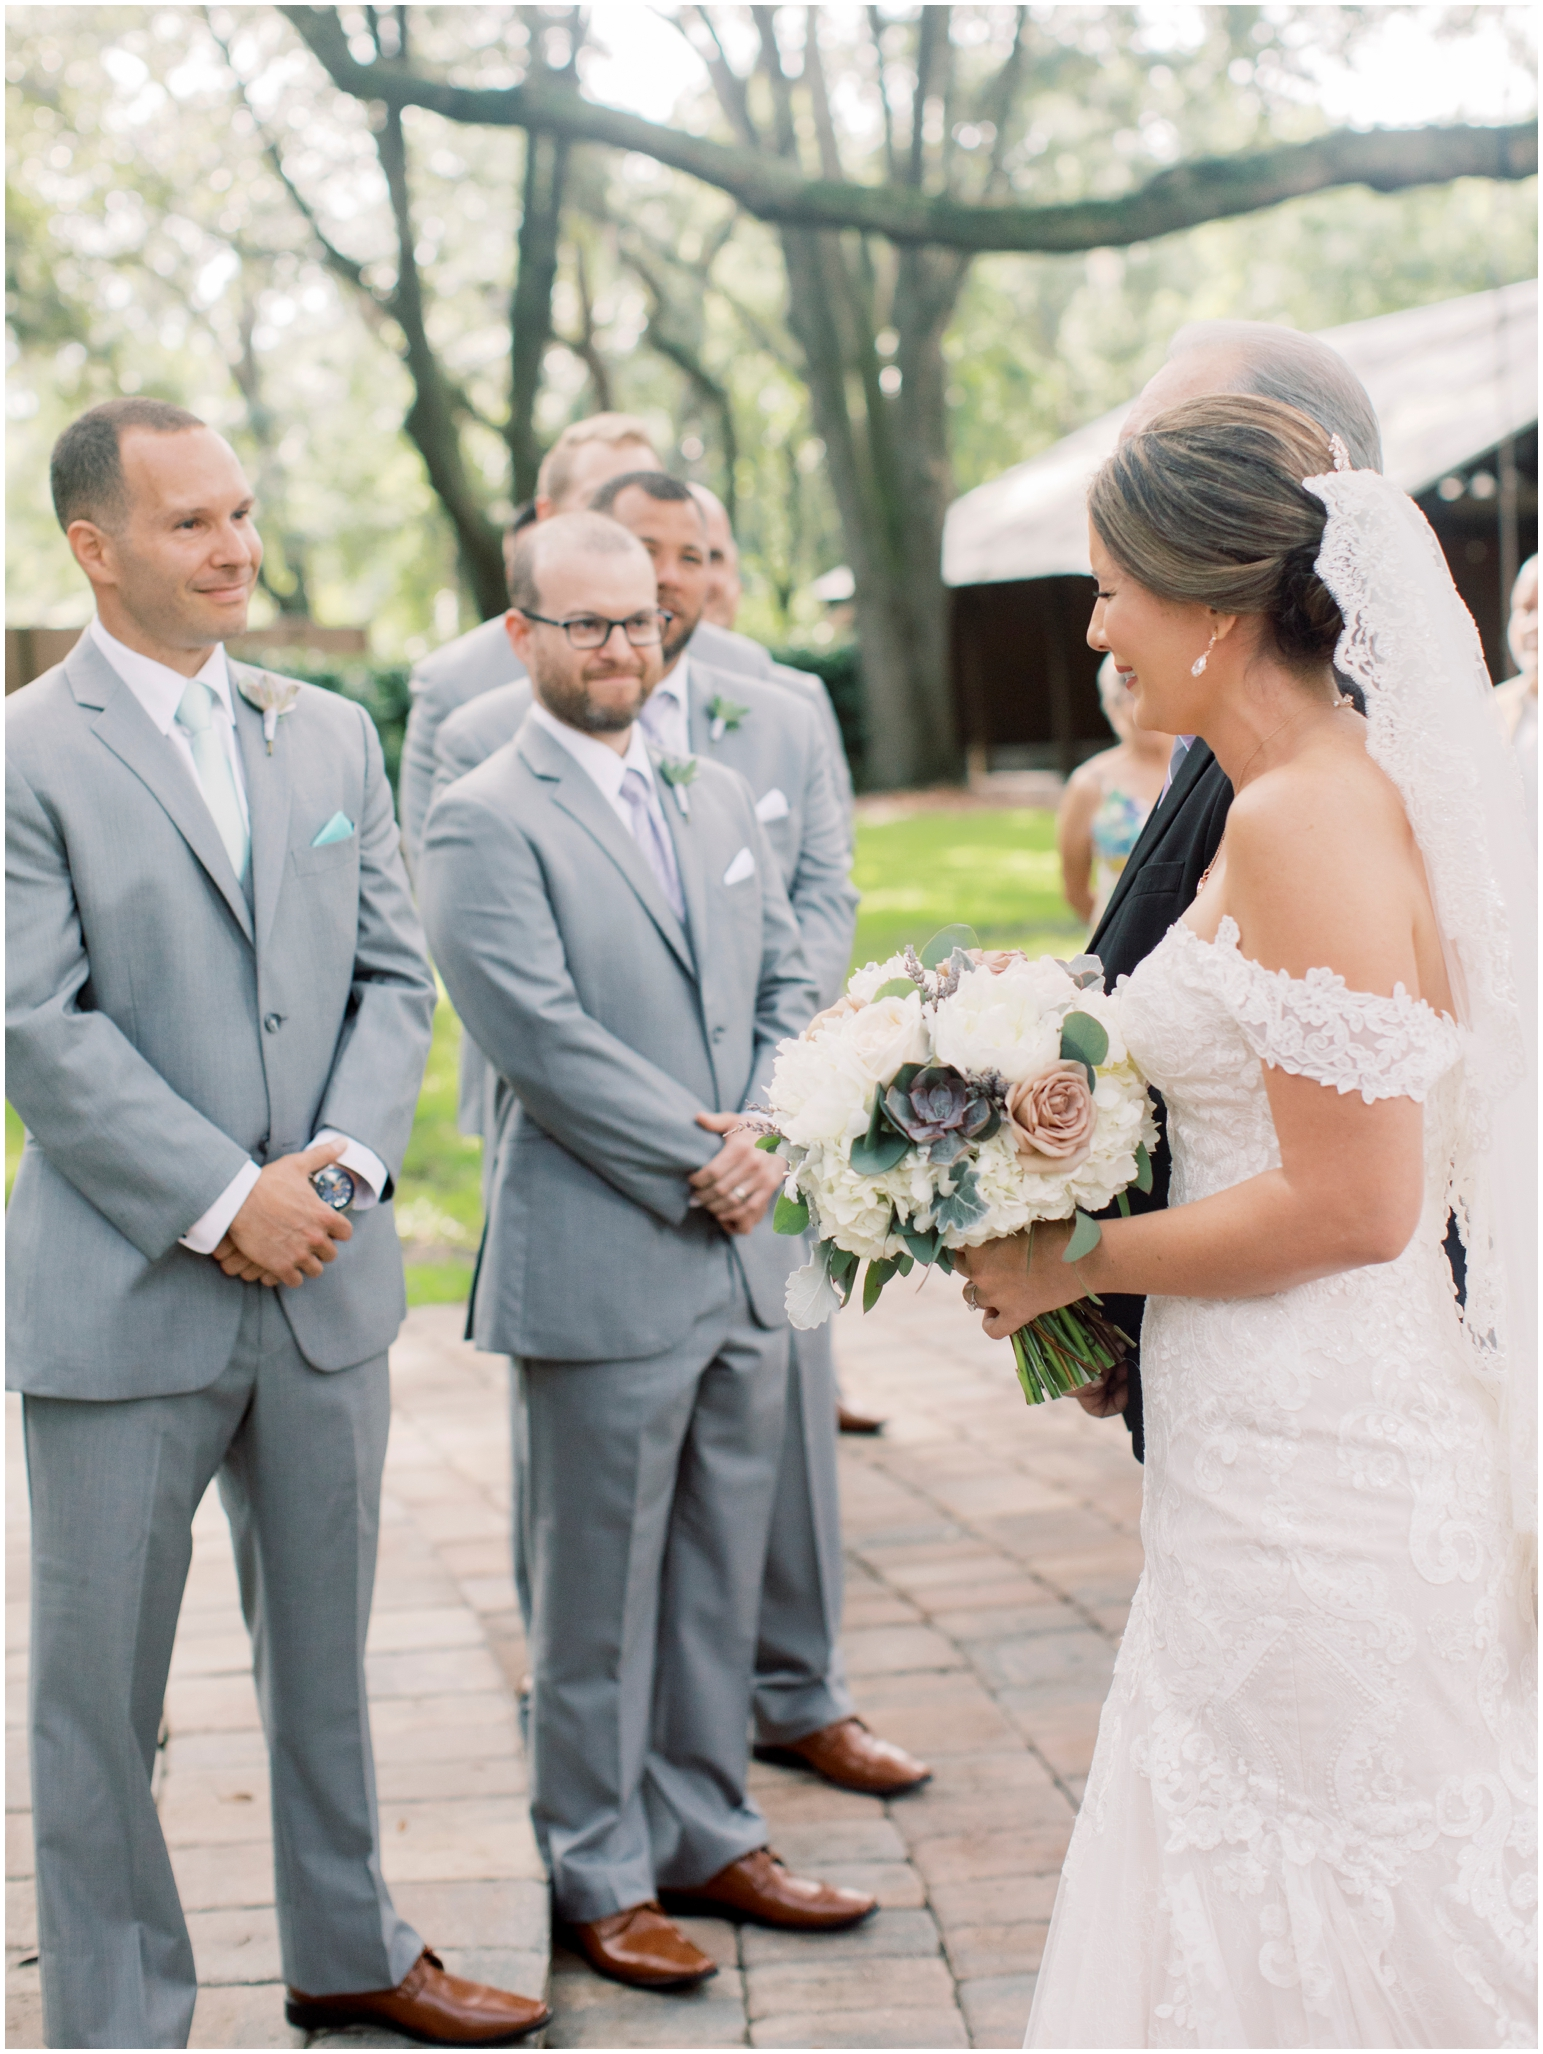 Lisa Silva Photography- Jacksonville, St Augustine, Fernandina Beach, Amelia Island, Ponte Vedra Beach, North East Florida Fine Art Film Photographer- Ashley and Shawn's wedding at bowing oaks plantation_0061.jpg